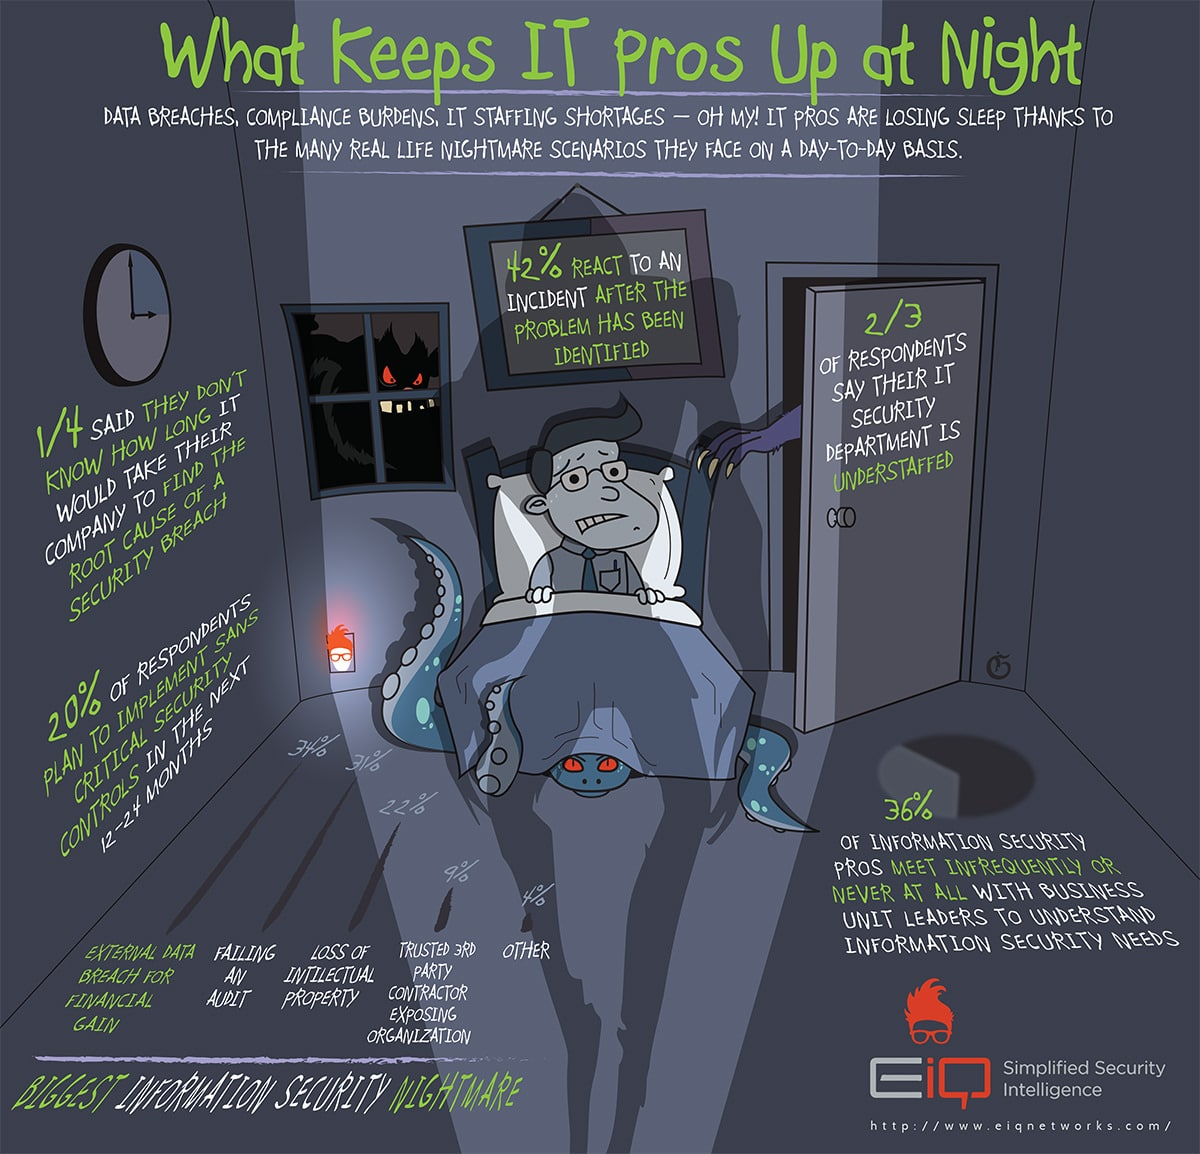 EiQ - What Keeps IT Pros Up at Night